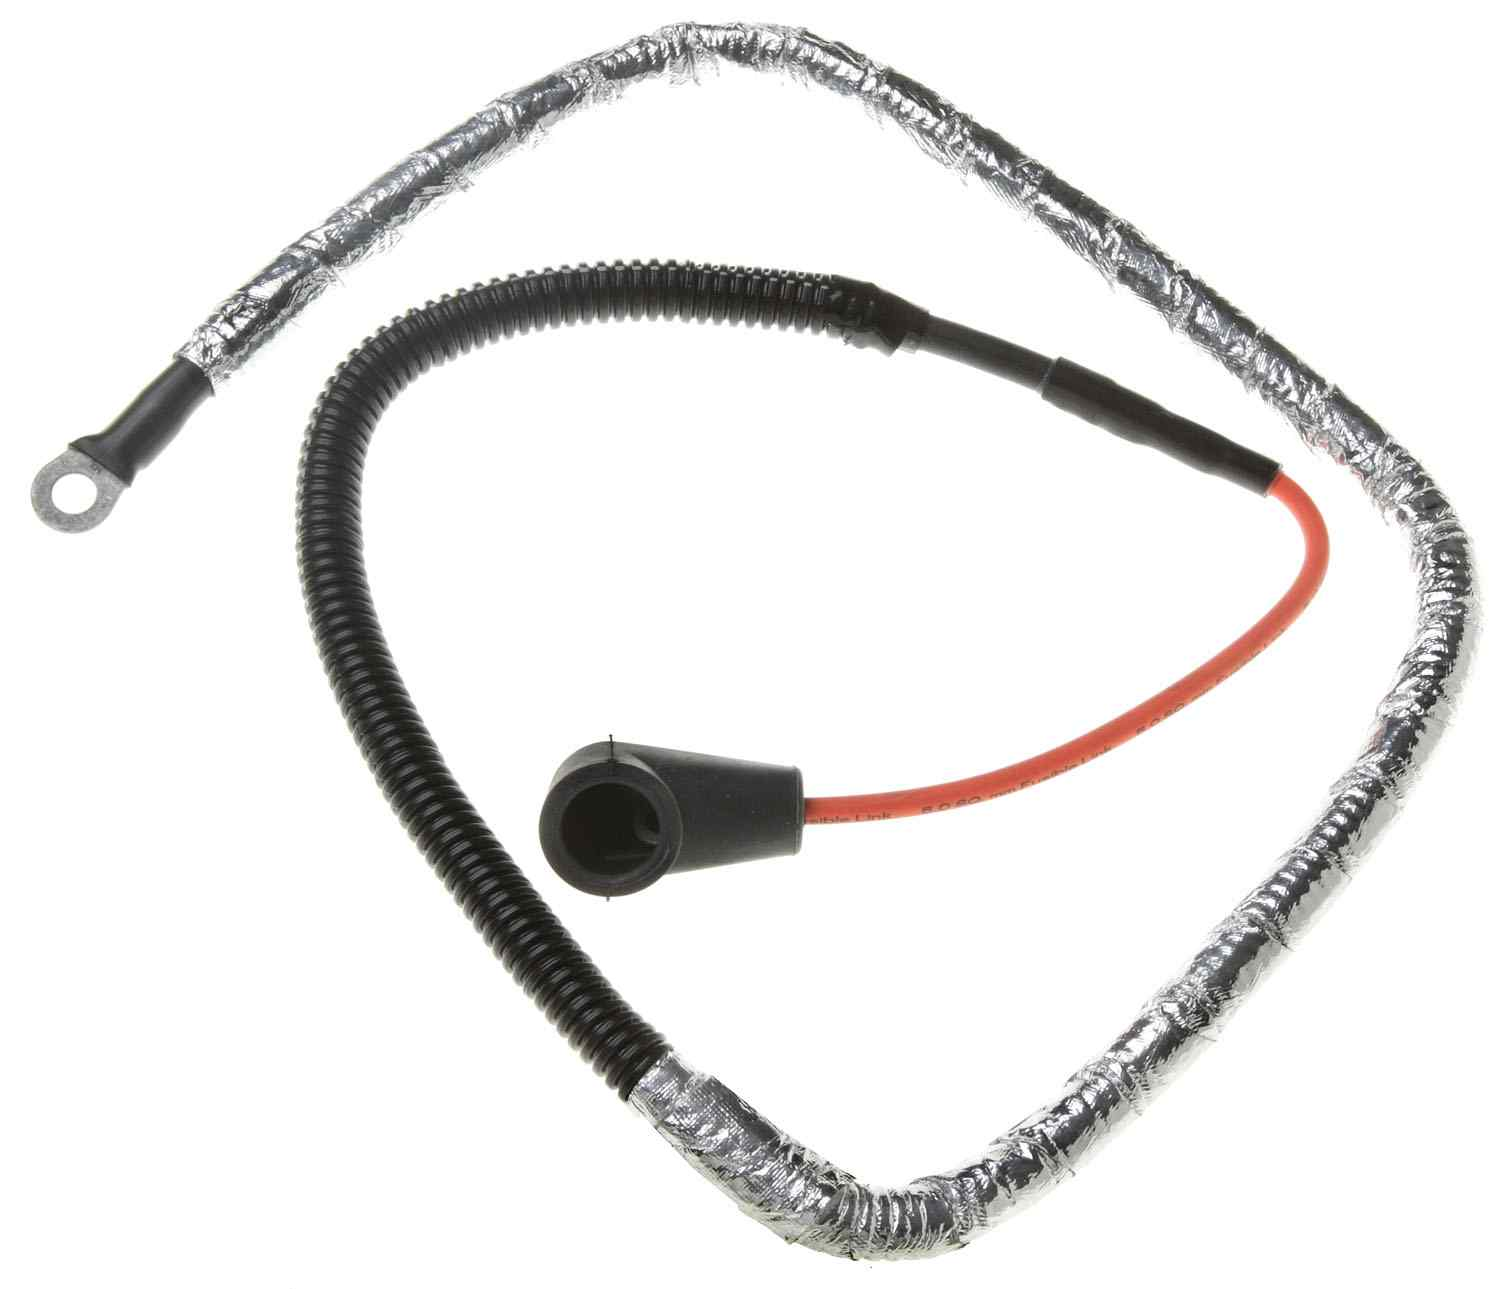 ACDELCO PROFESSIONAL - Battery Cable - DCC 6ST44